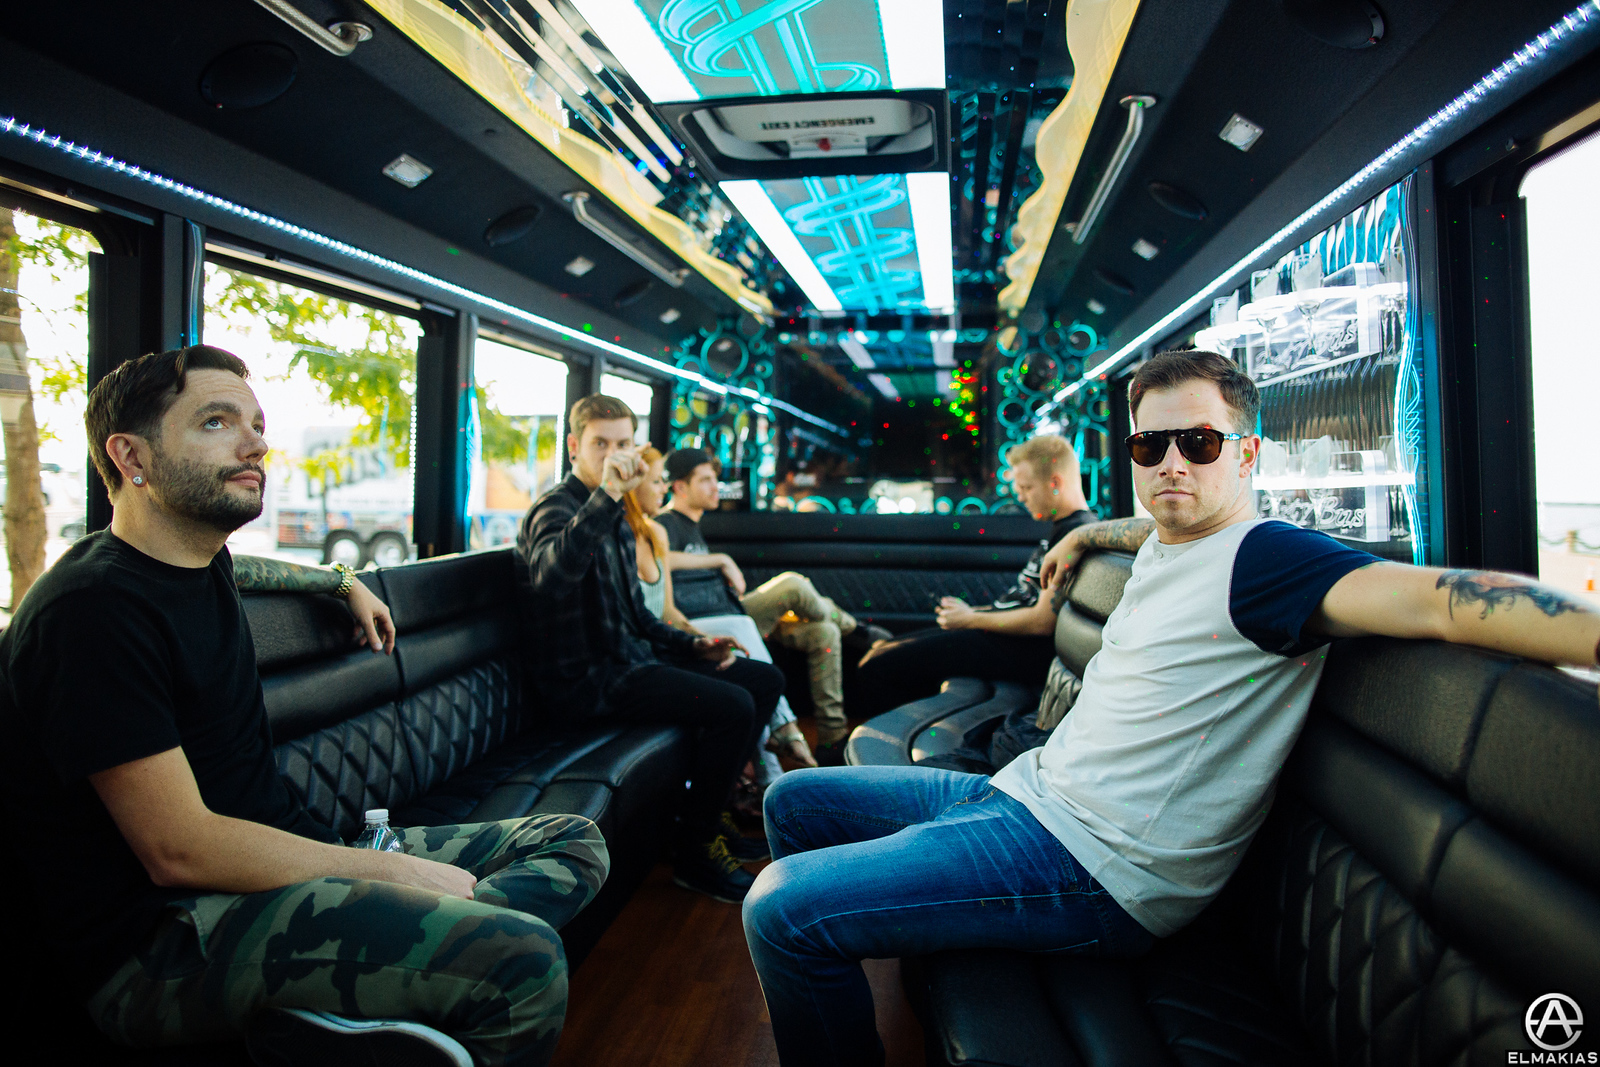 Party bus to rehearsals at venue with A Day To Remember